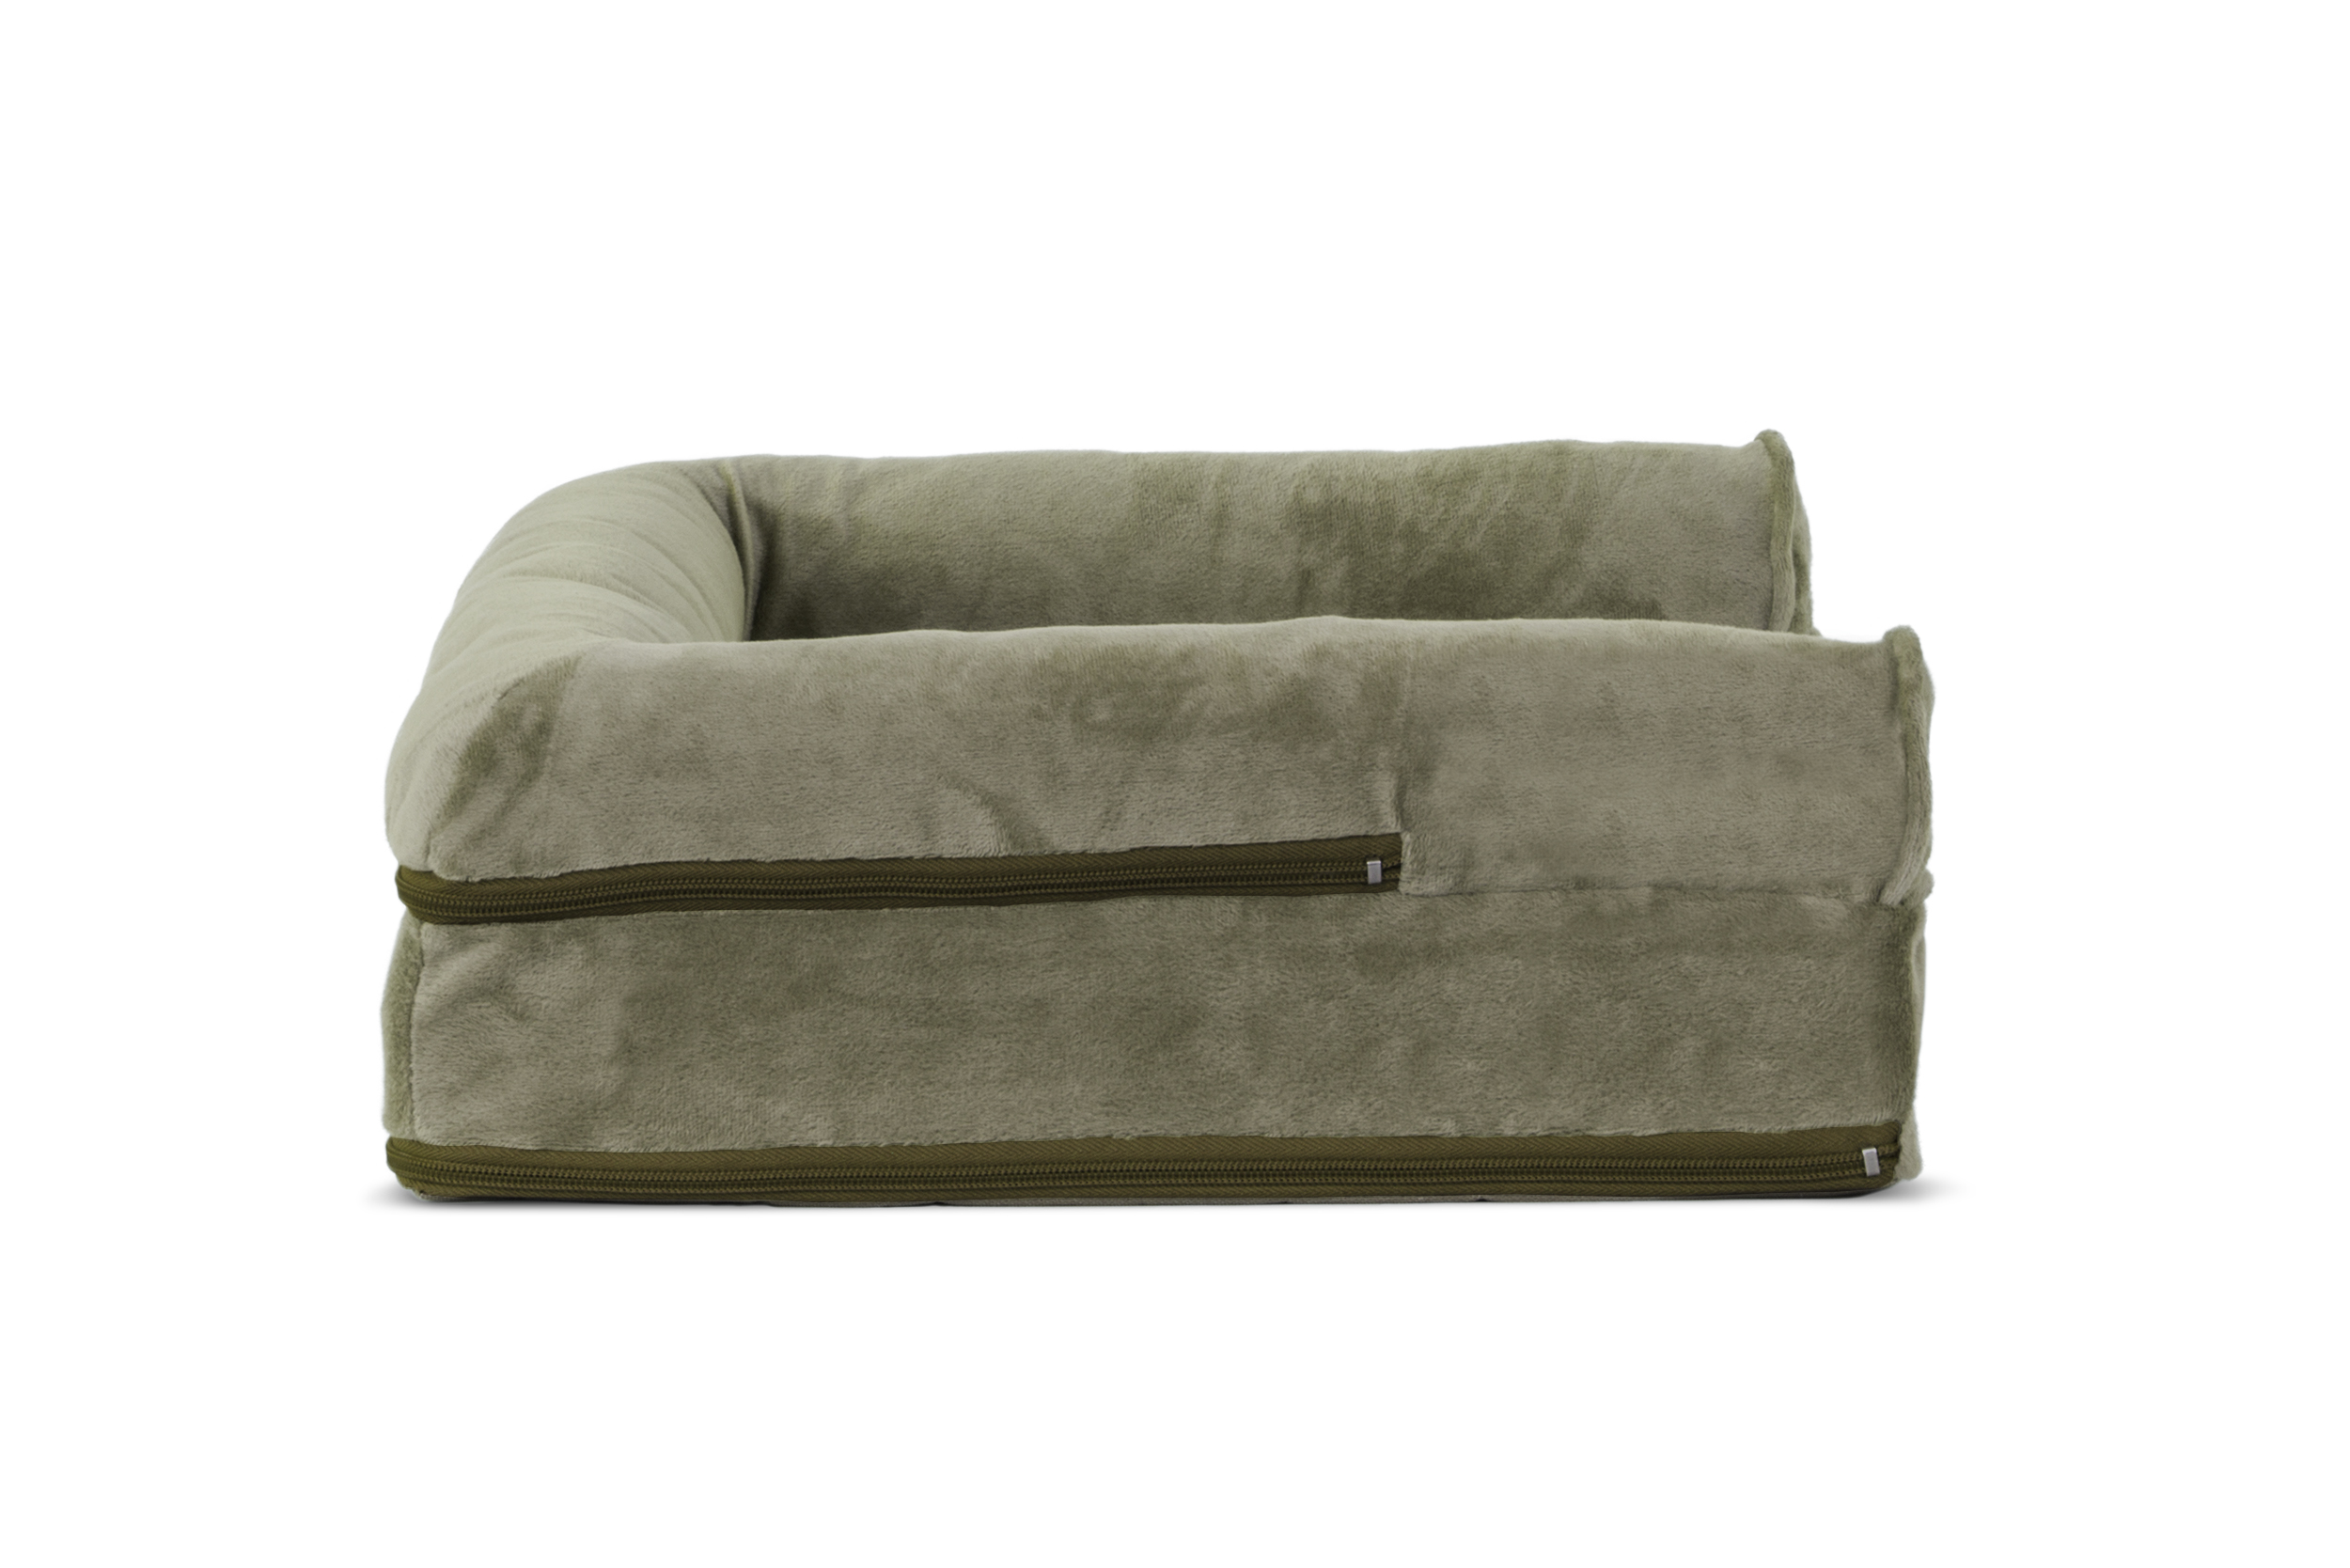 orthopedic sofa freeport slate memory foam reviews faux fur and velvet pet bed dog couch ebay